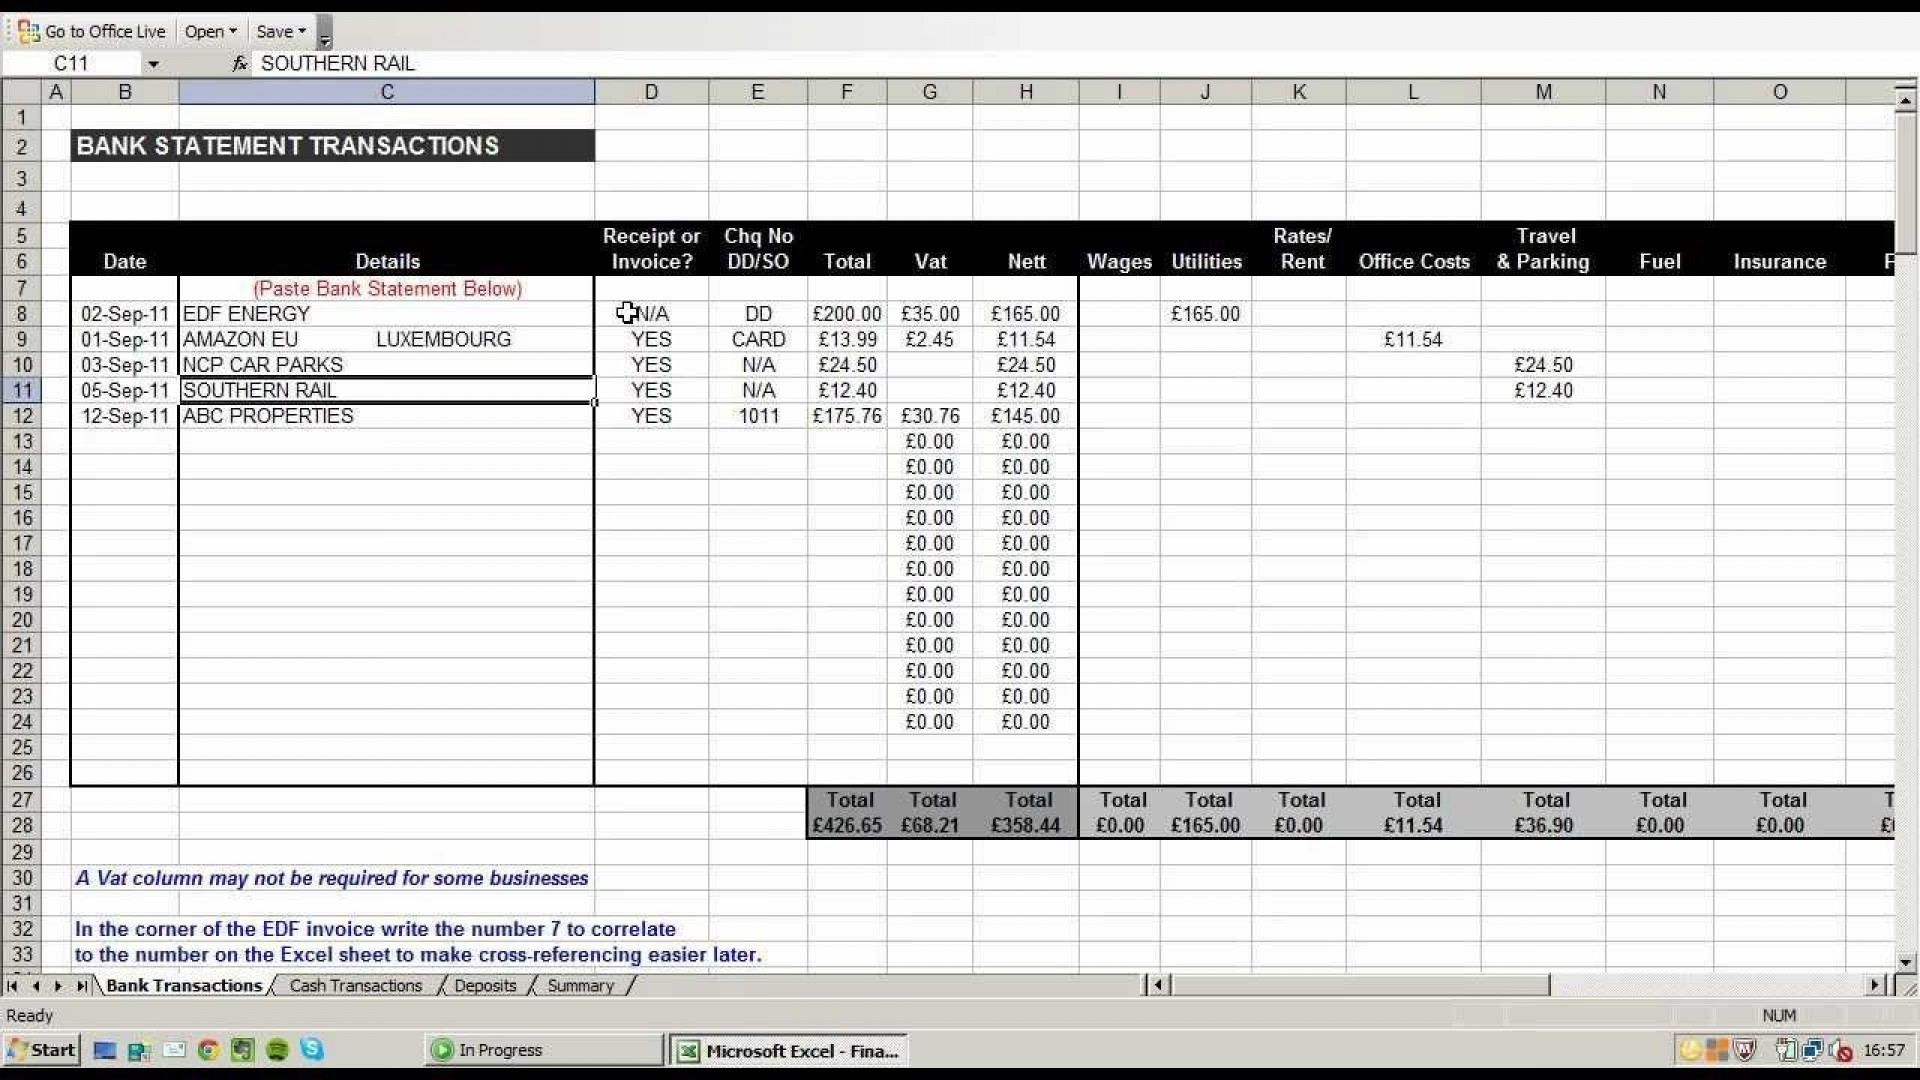 002 Beautiful Small Busines Expense Report Template Excel Concept 1920